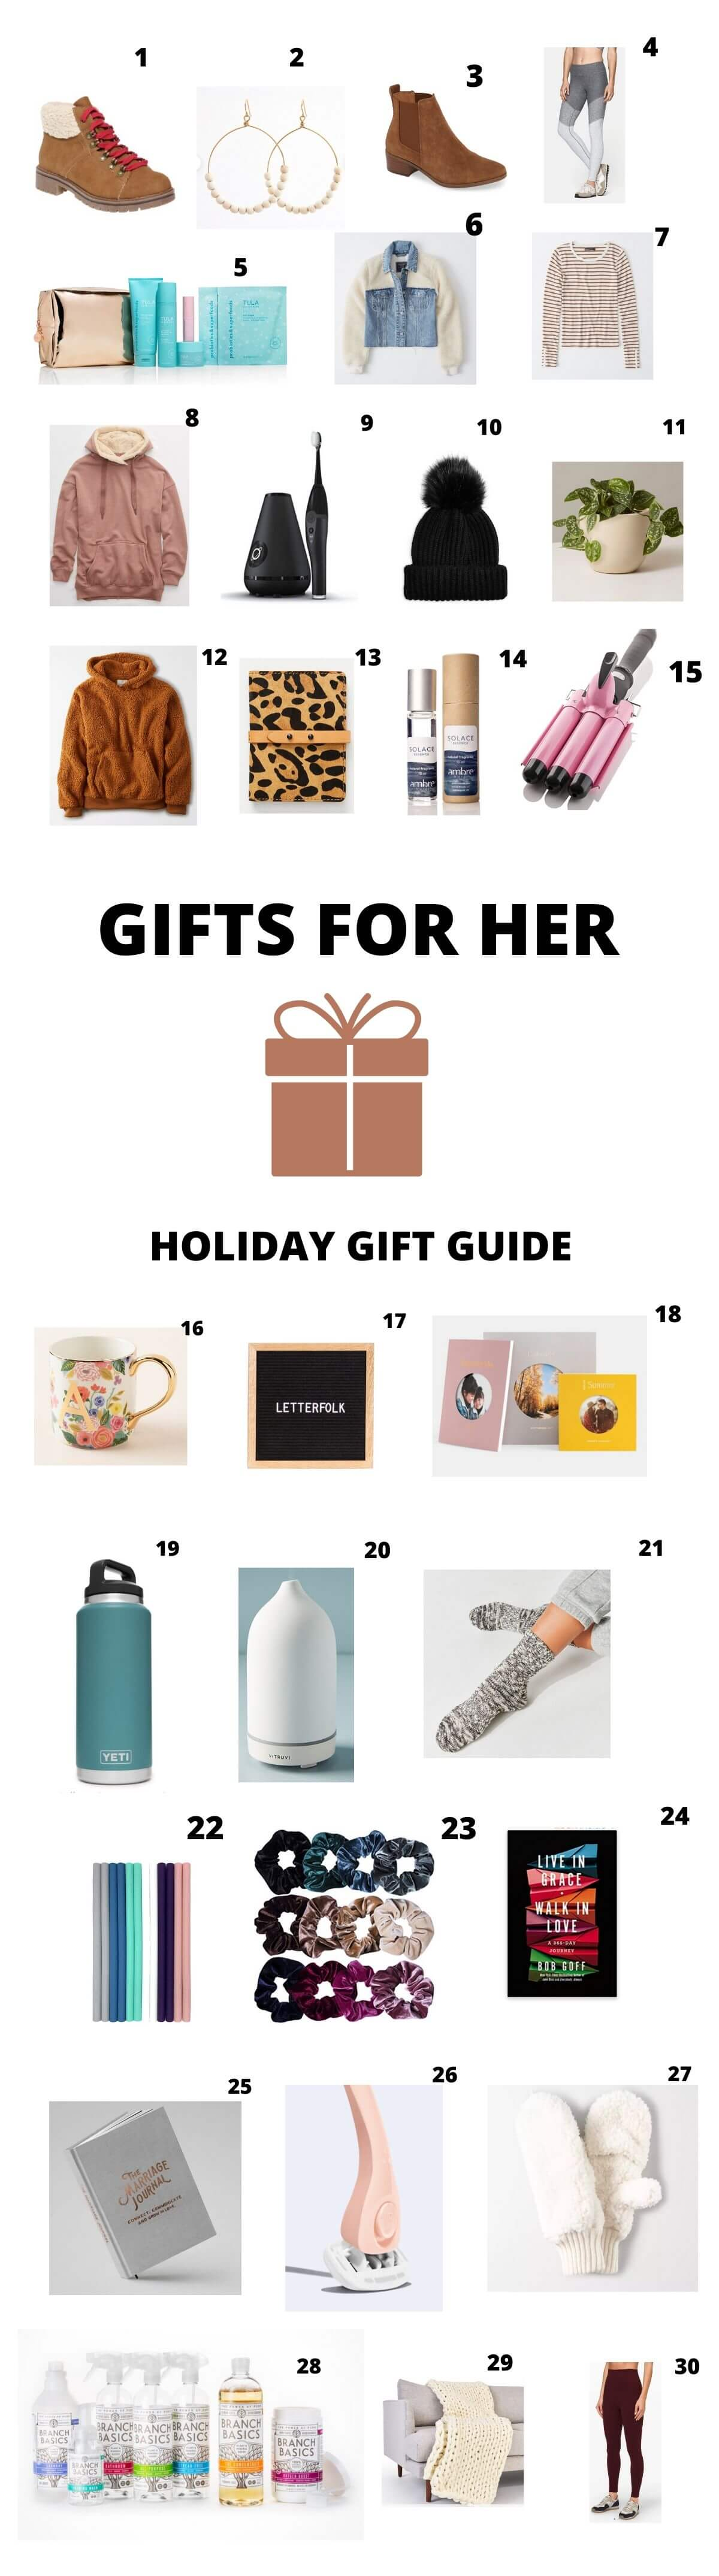 holiday gifts for her 2019